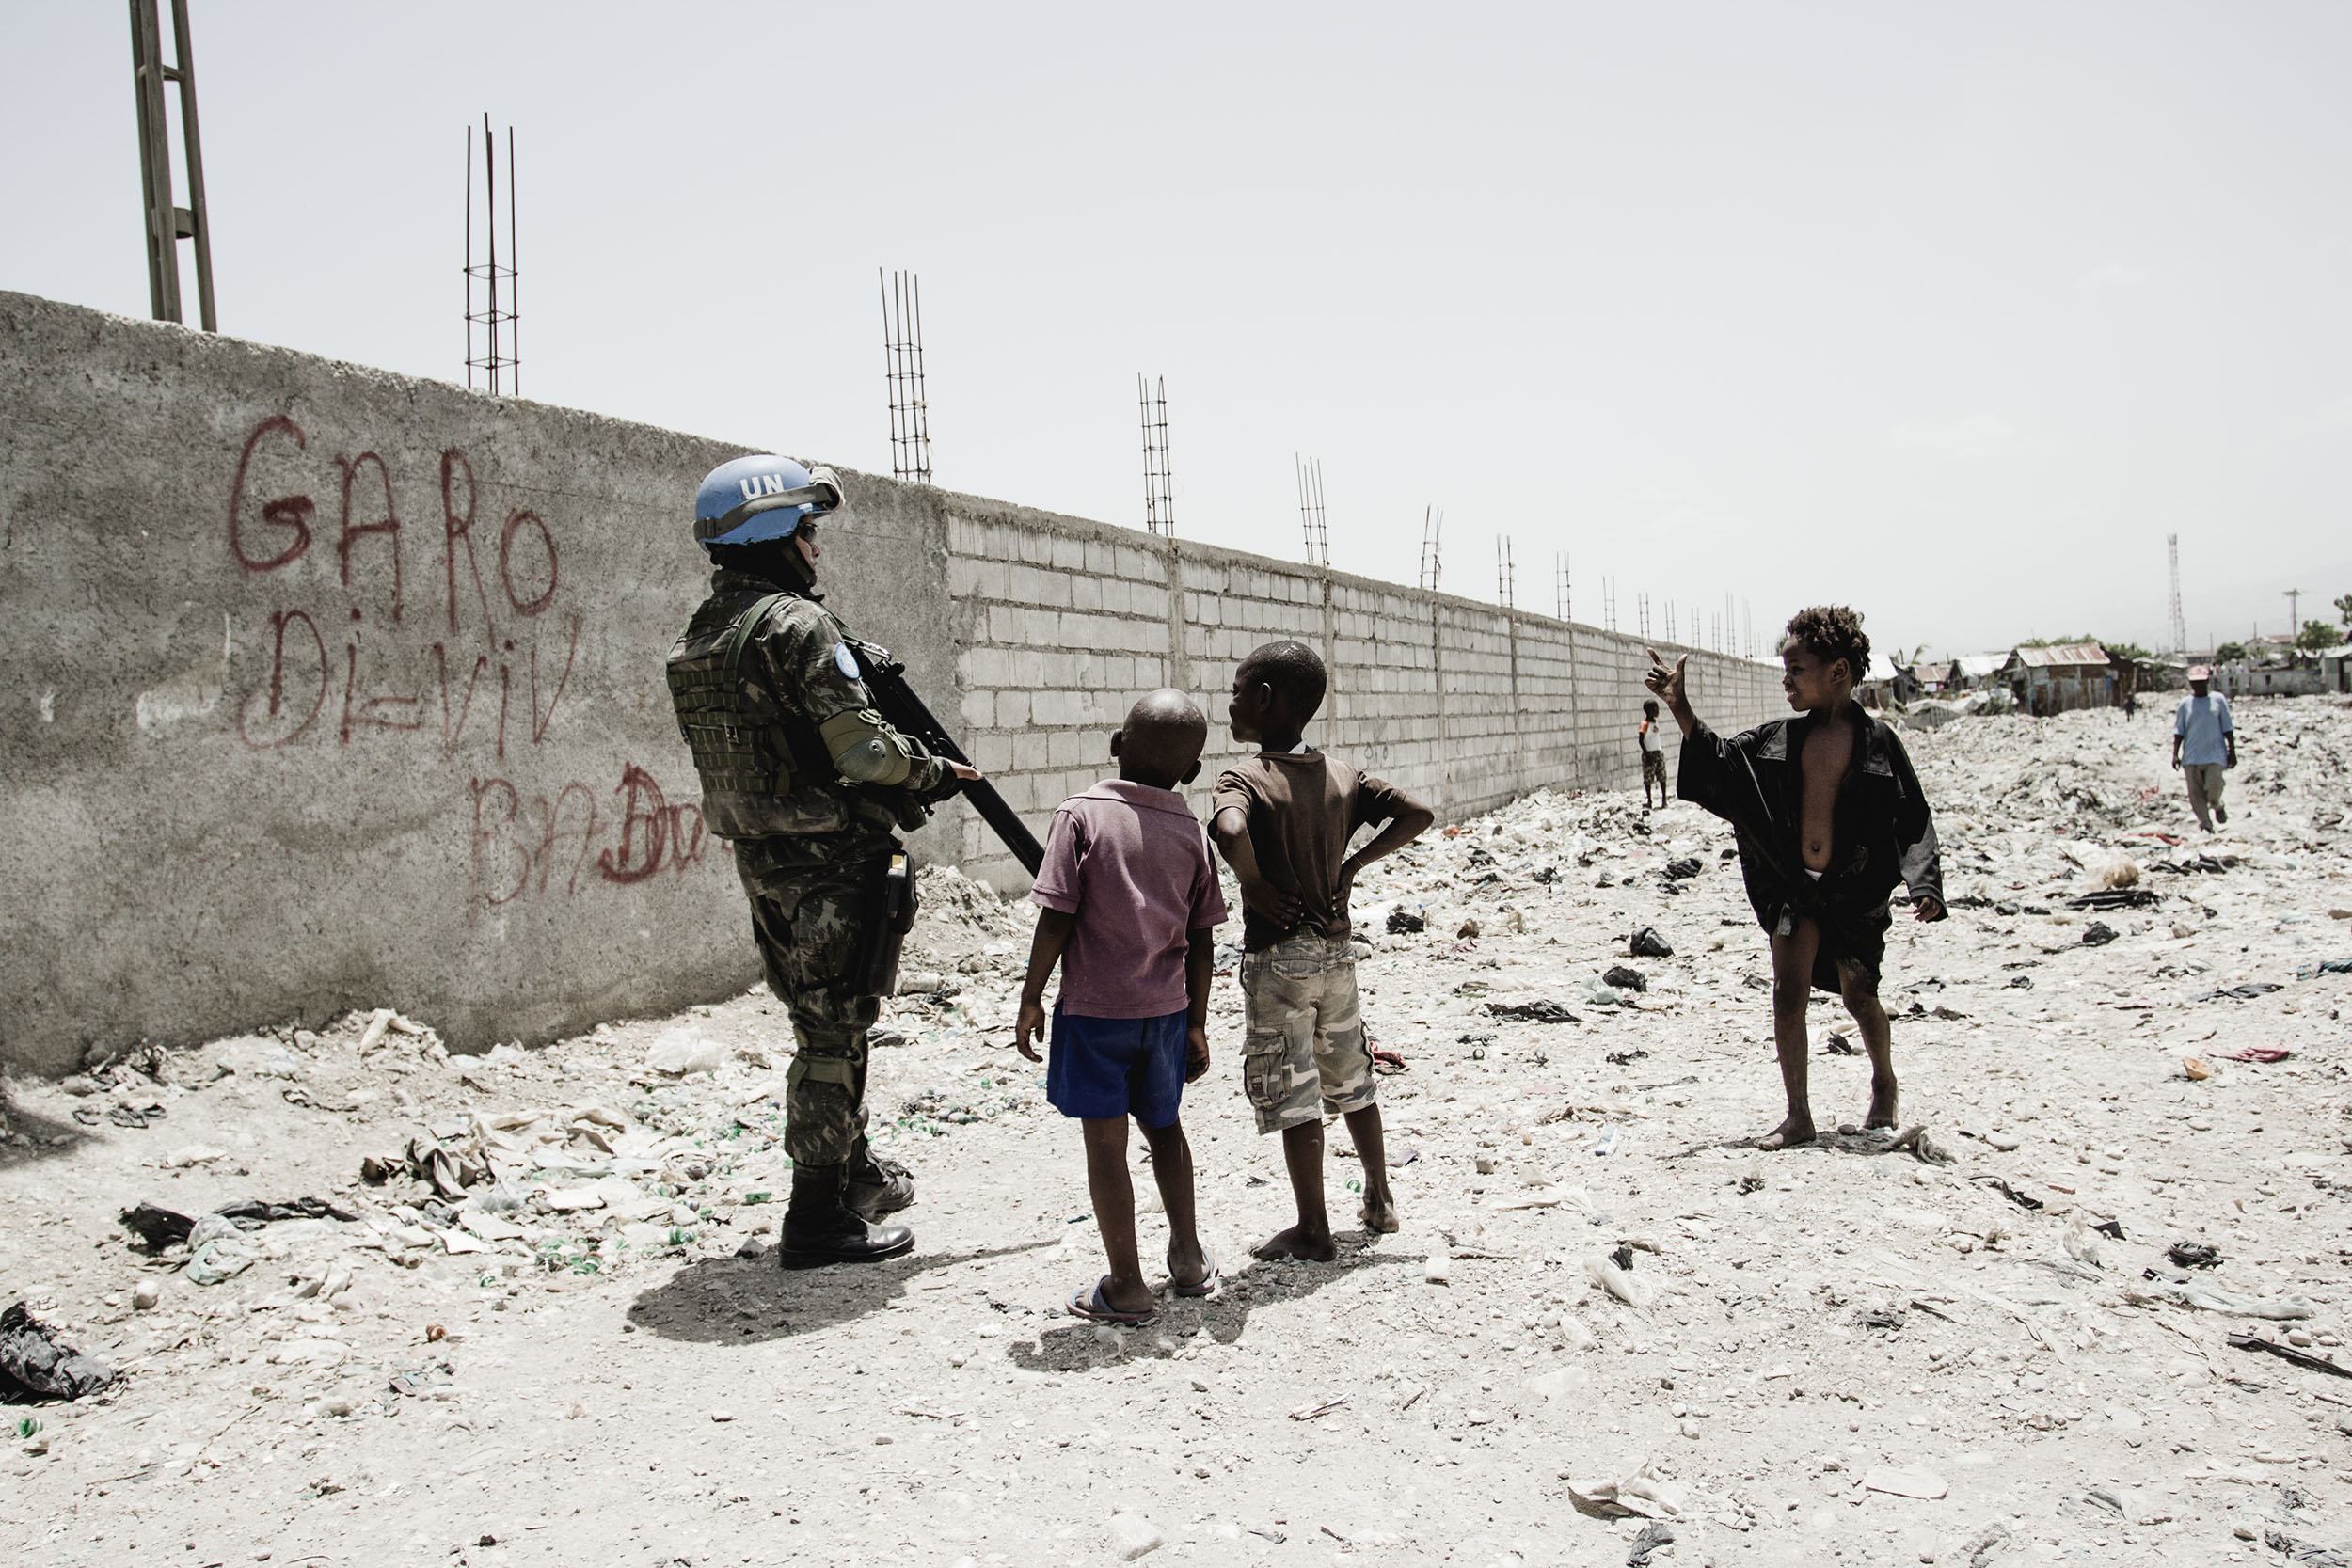 Haitian kids greet a UN soldier in Cité Soleil